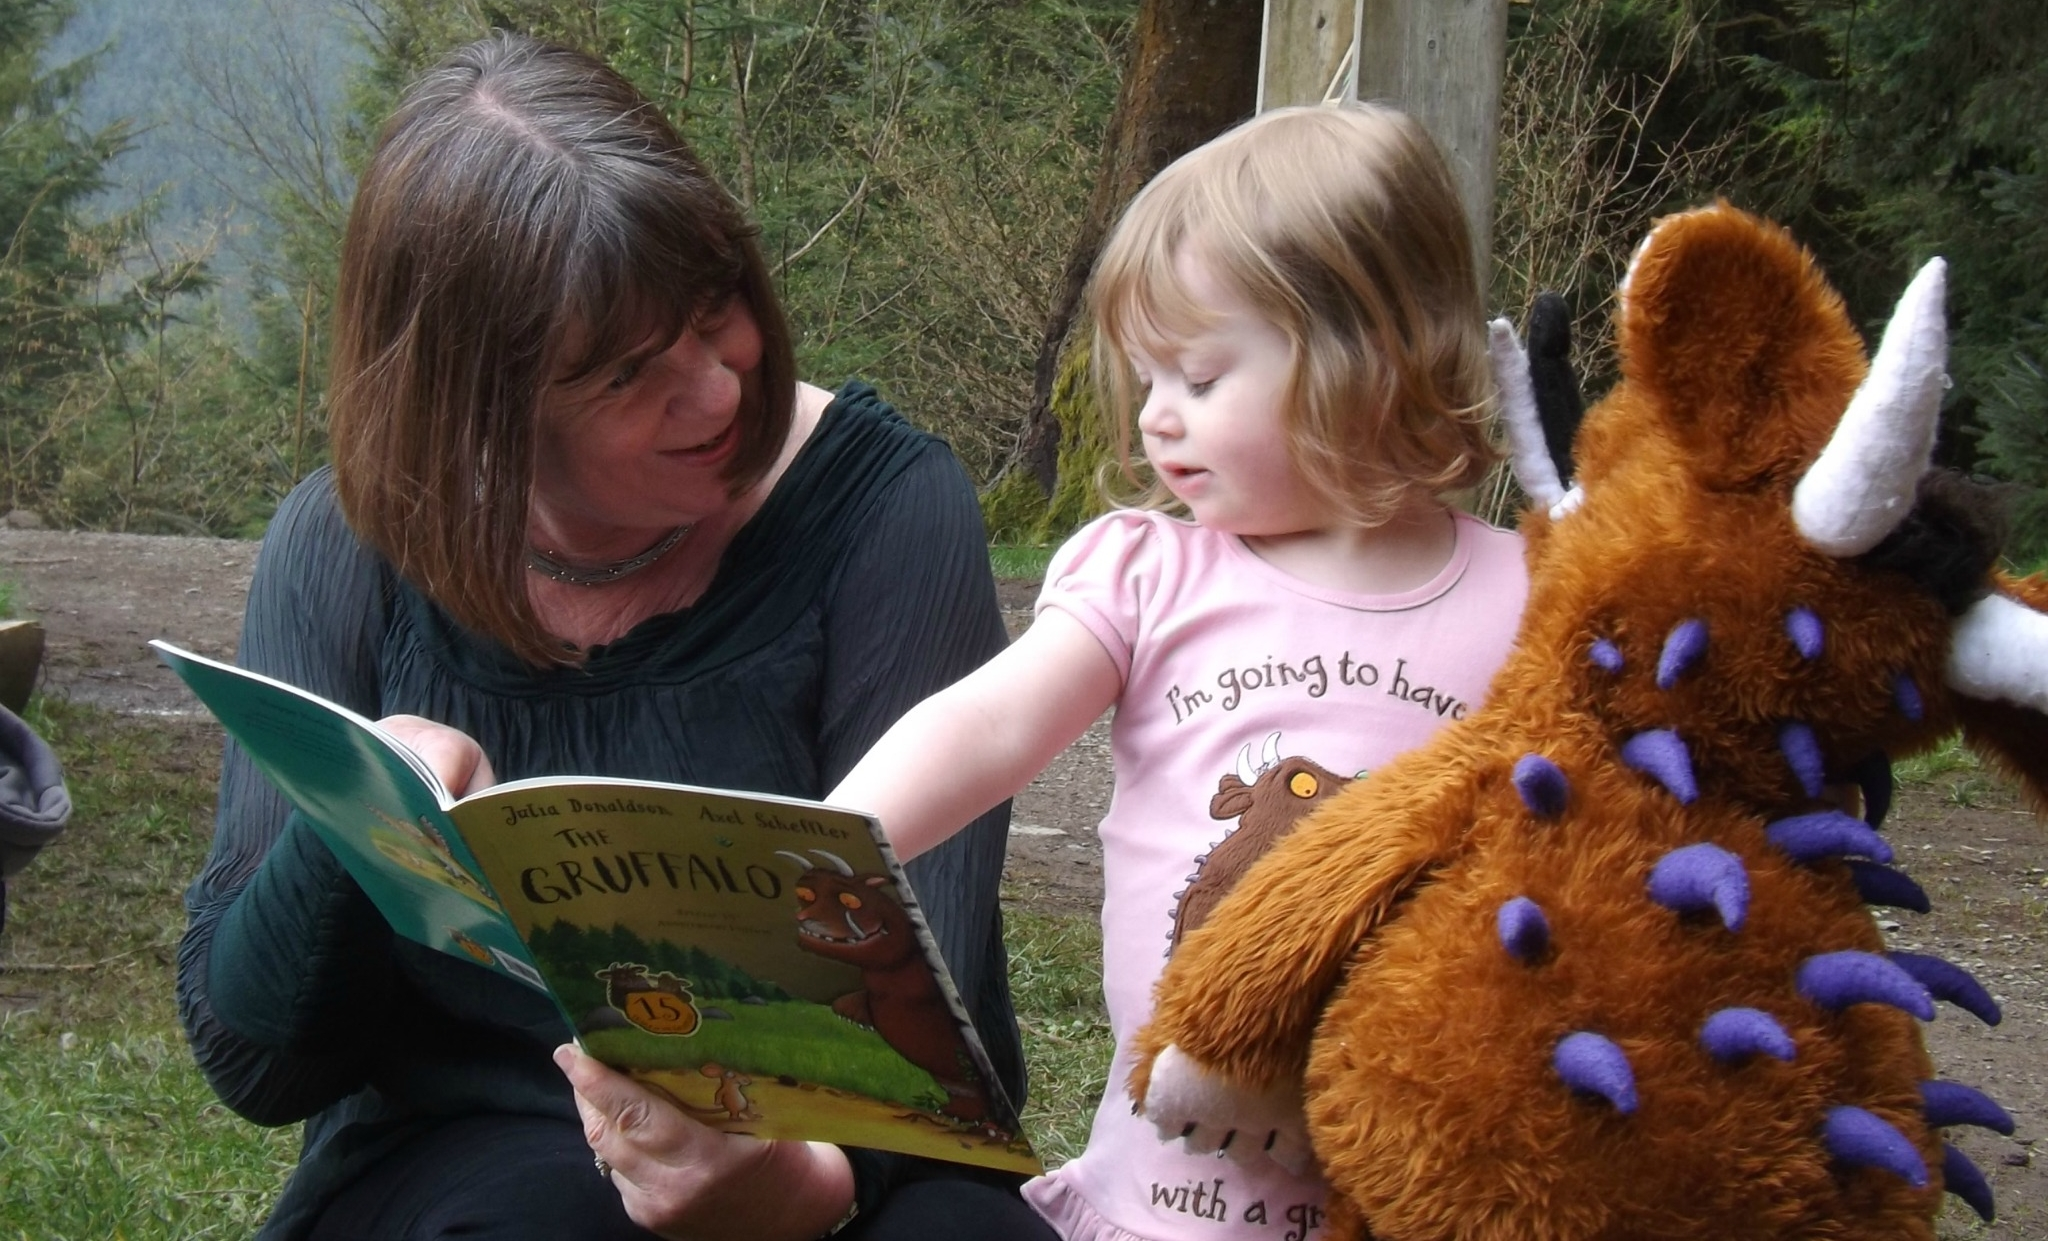 Family PR Campaign - Julia Donaldson, Author of The Gruffalo - Media Event on behalf of The Forestry Commission